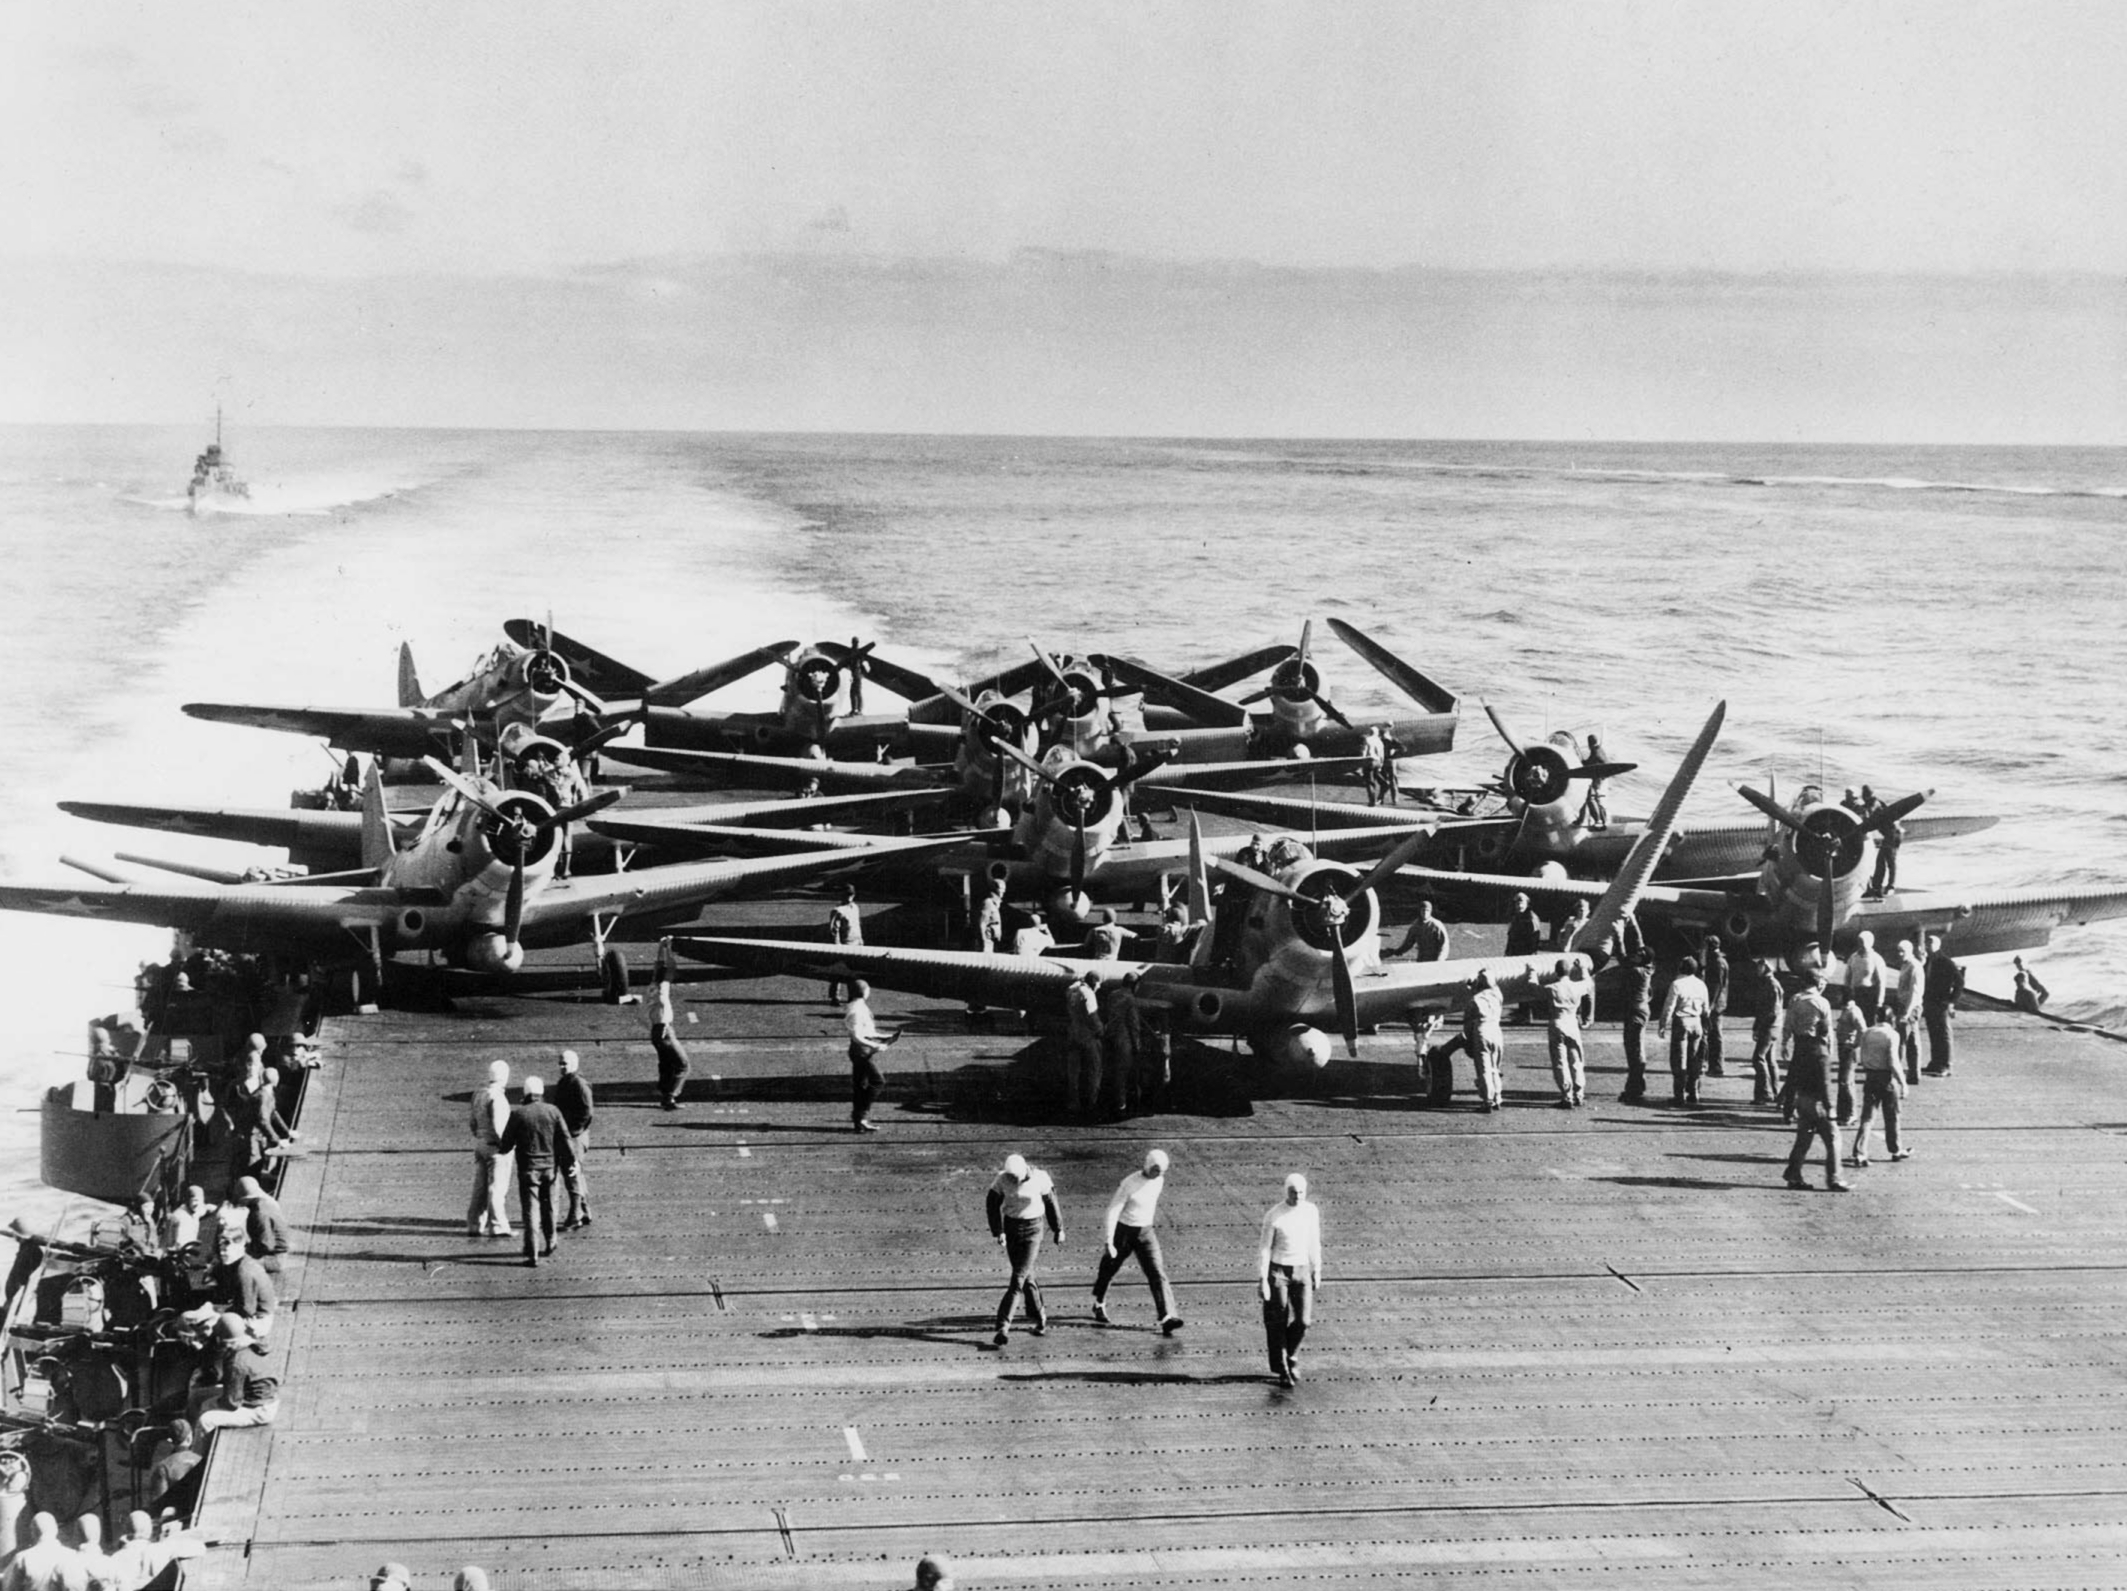 Devastators of VT-6 aboard USS Enterprise being prepared for take off during the battle. ( Photo U.S. Navy - U.S. Navy National Museum of Naval Aviation photo No. 1996.253.999)